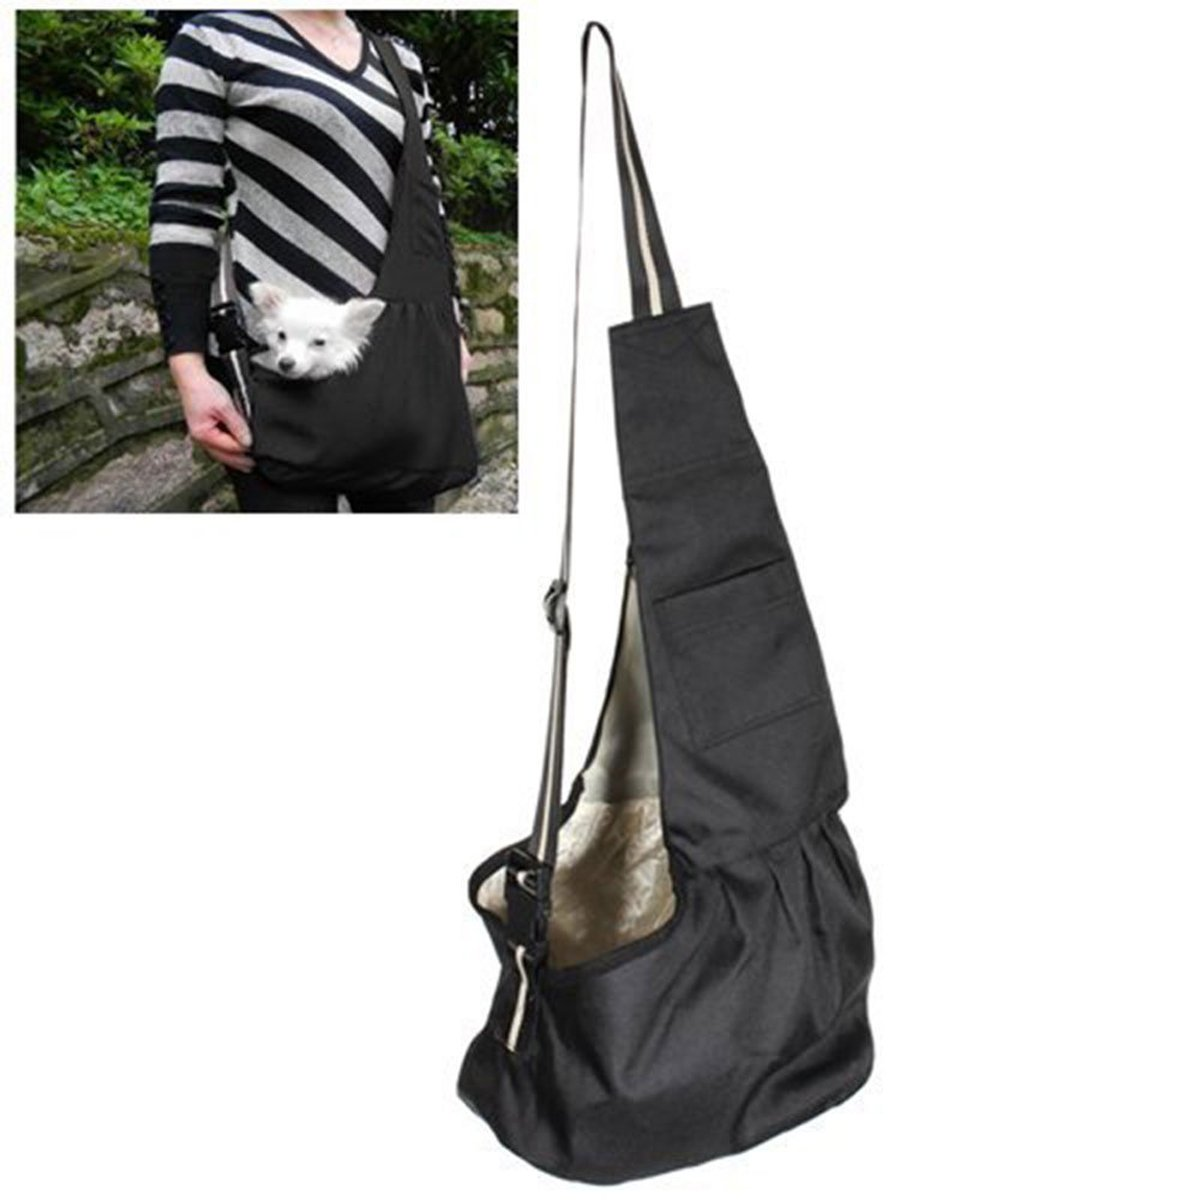 Prettysell Pet Dog Puppy Cat Carrier Bag Oxford Cloth Sling Single Shoulder Bag-Small,Black by Prettysell (Image #4)